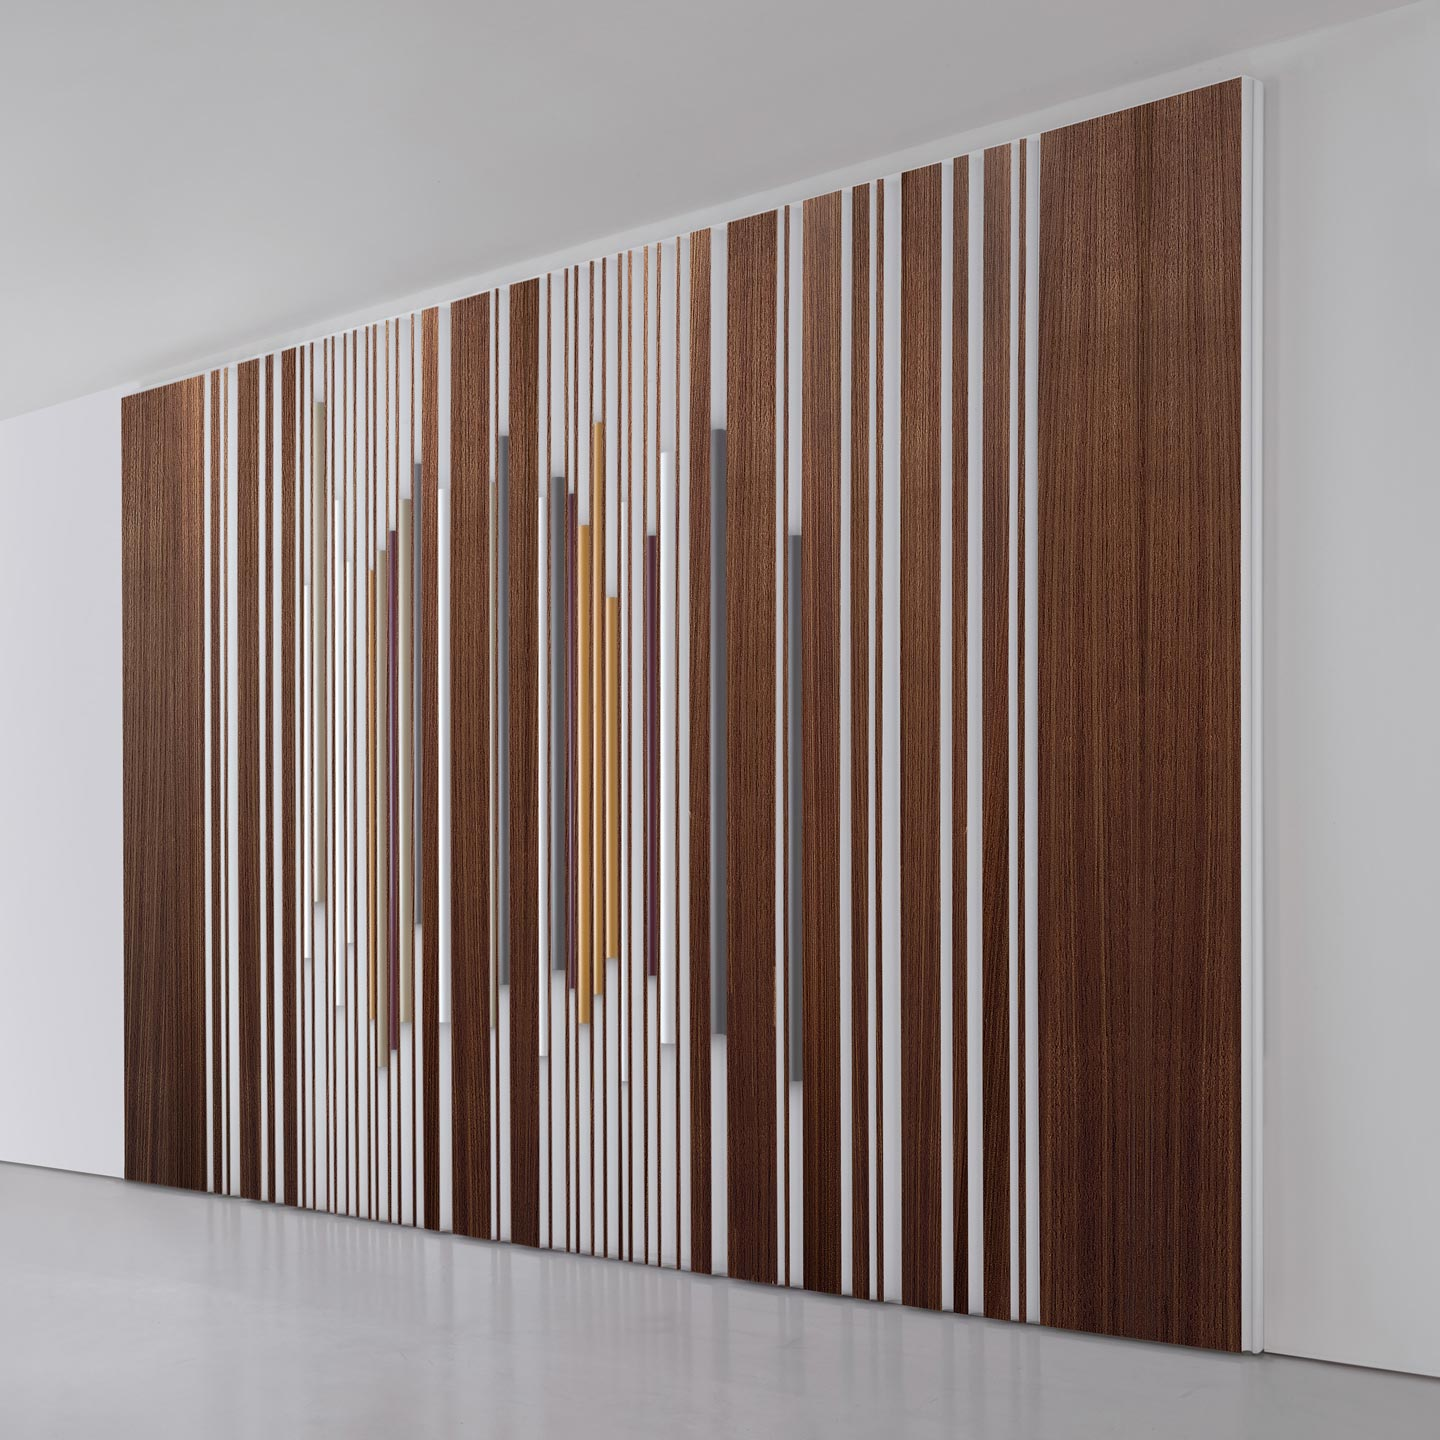 Great Designs Of Bamboo Panel Idea For Your Space: Stylish Designs Of Bamboo Panel Modern Style Sliding Door Ideas